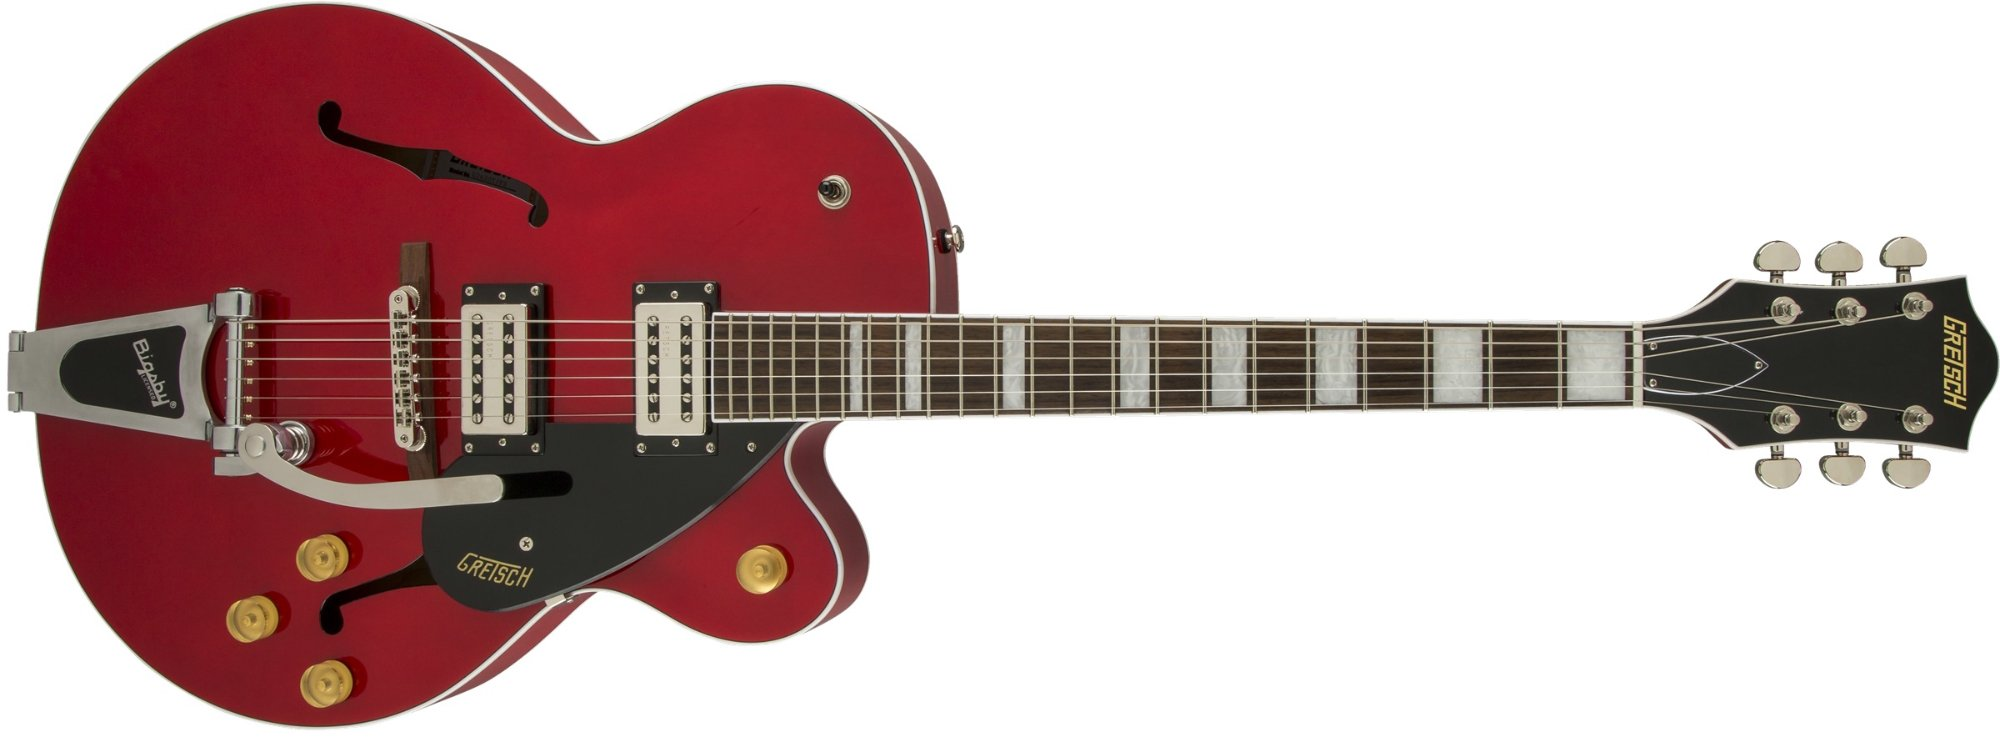 Streamliner Series Single Cutaway Hollow Body HH Electric Guitar with Bigsby